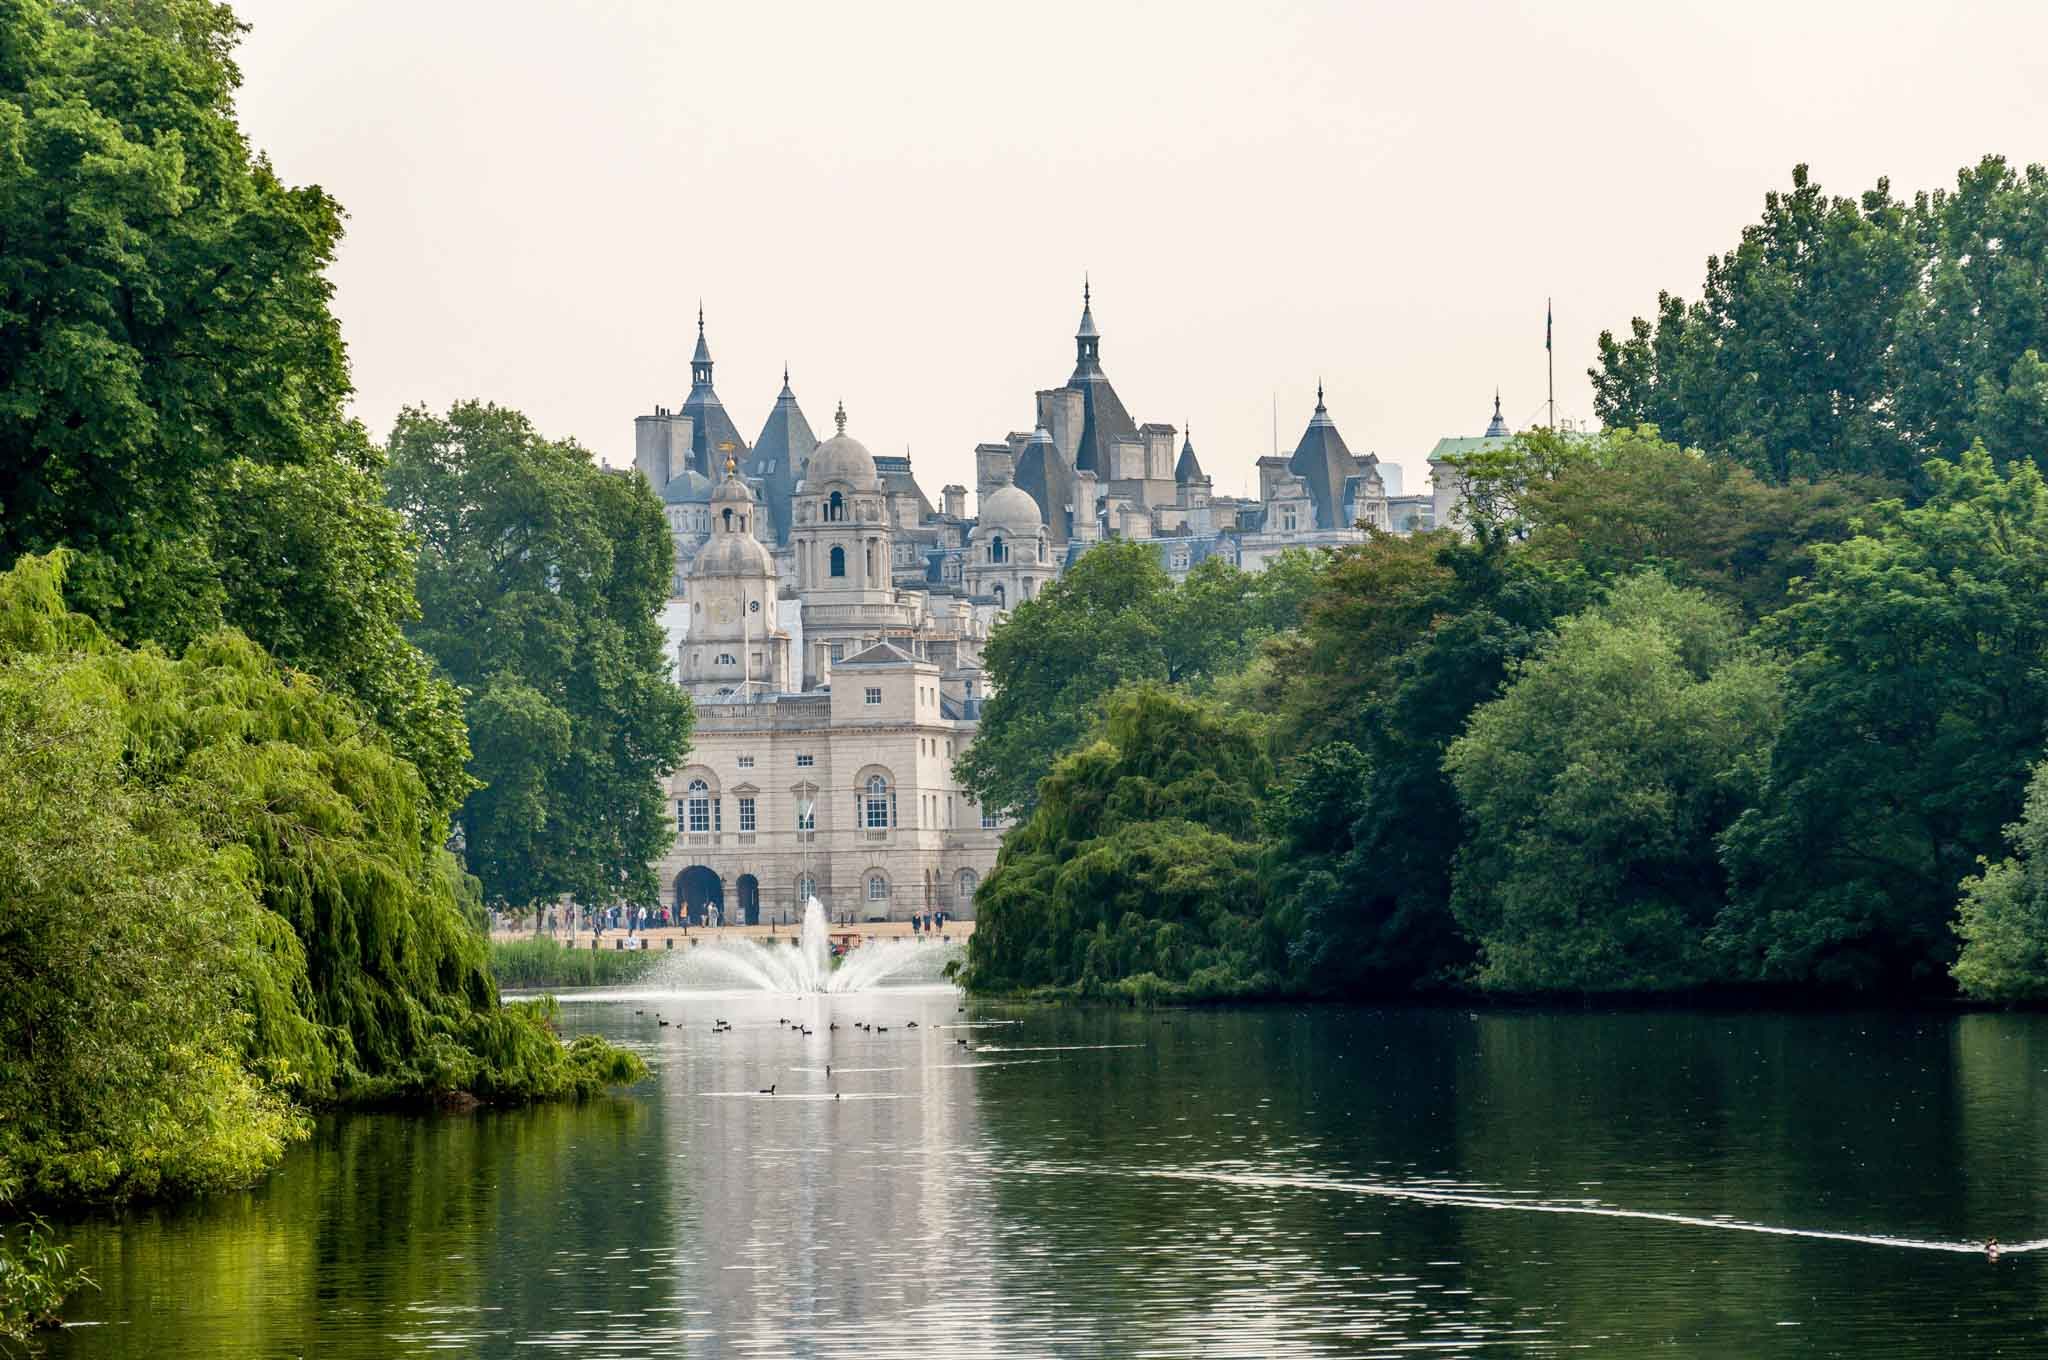 From the footbridge over the pond in St. James Park, you'll see the Horse Guards at the far end of the park.  This will be the next stop on your long London Heathrow Layover Itinerary.